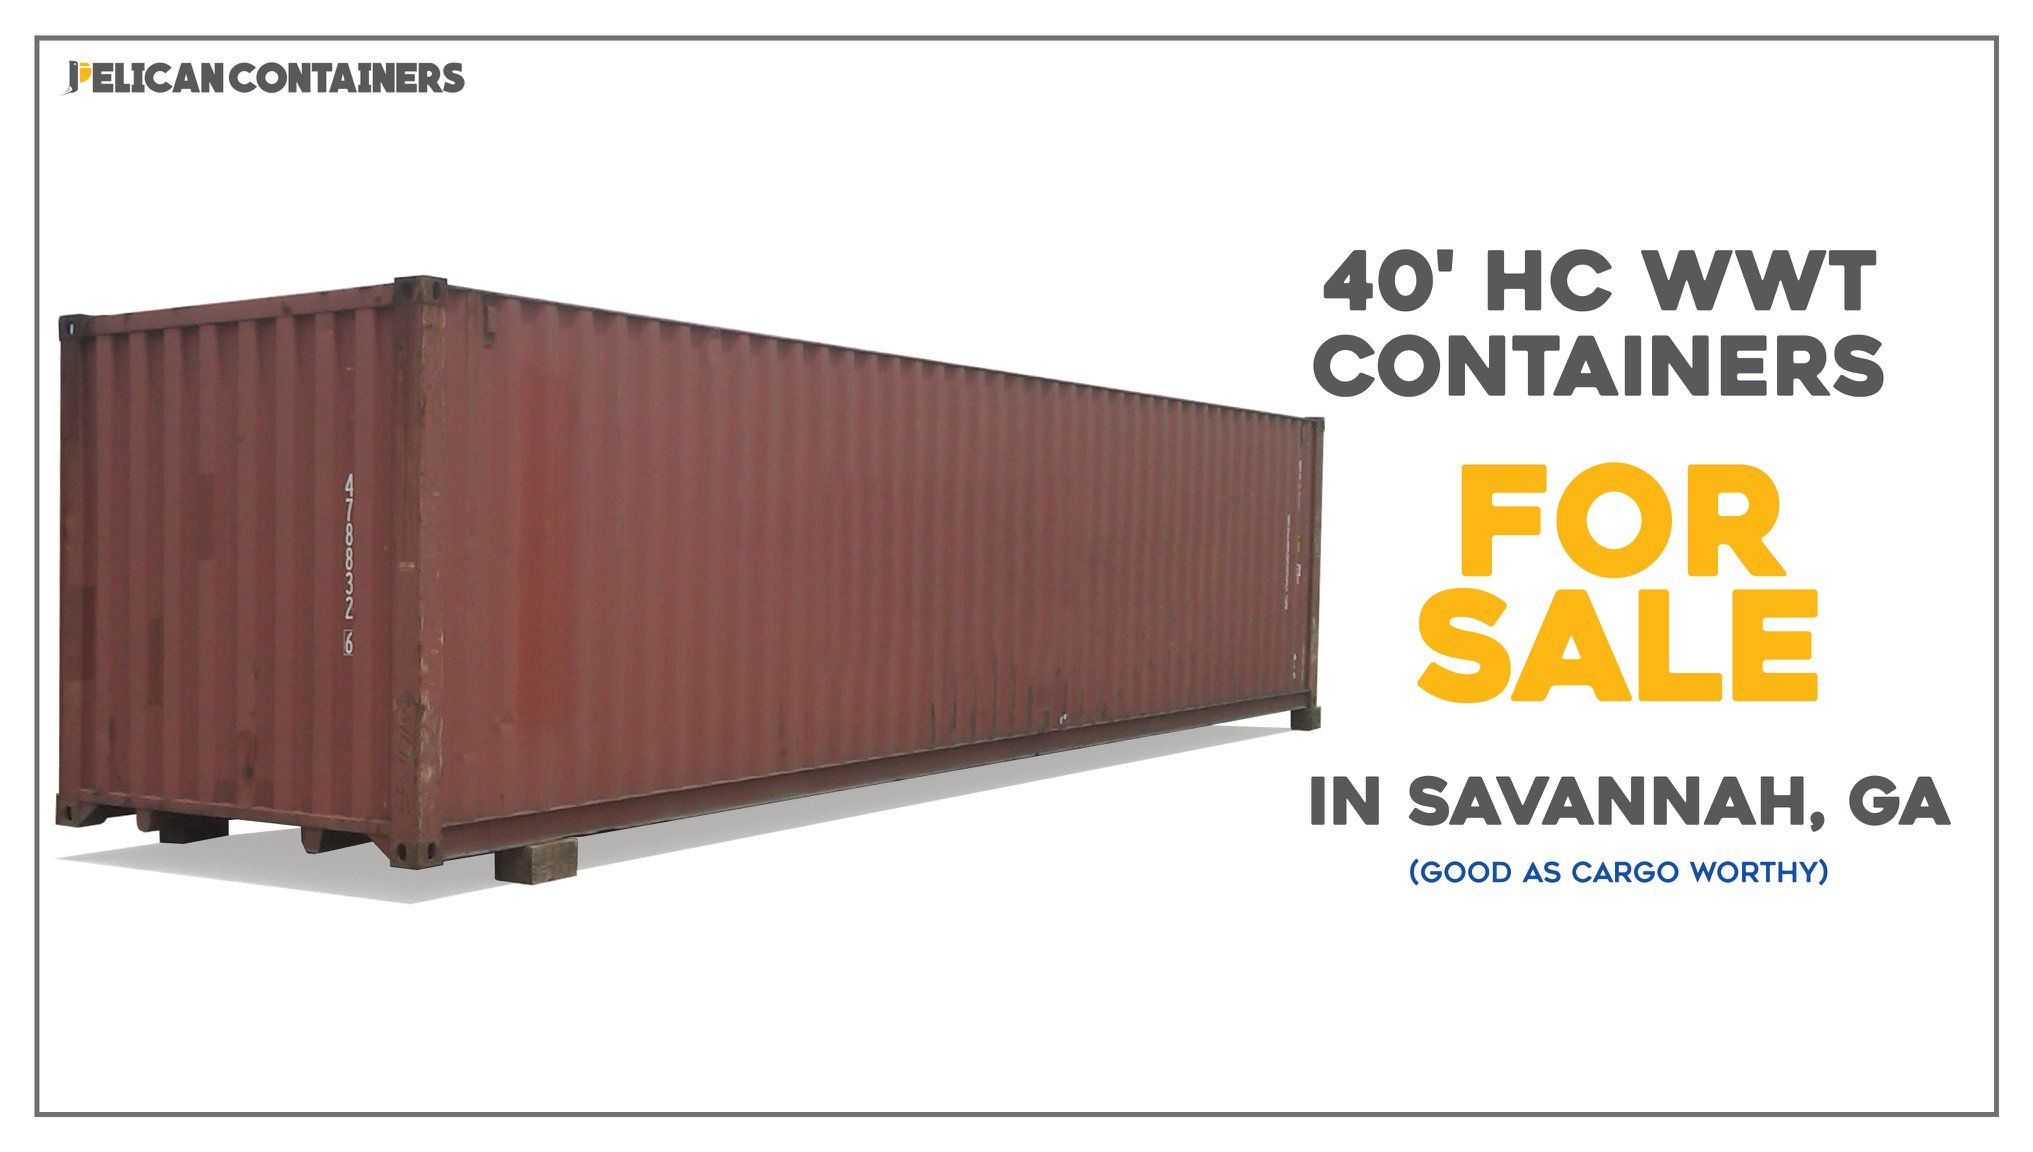 40 Hc Wwt Containers Good As Cargo Worthy For Sale In Savannah Ga Usa Shipping Shipping Containers For Sale Containers For Sale Used Shipping Containers